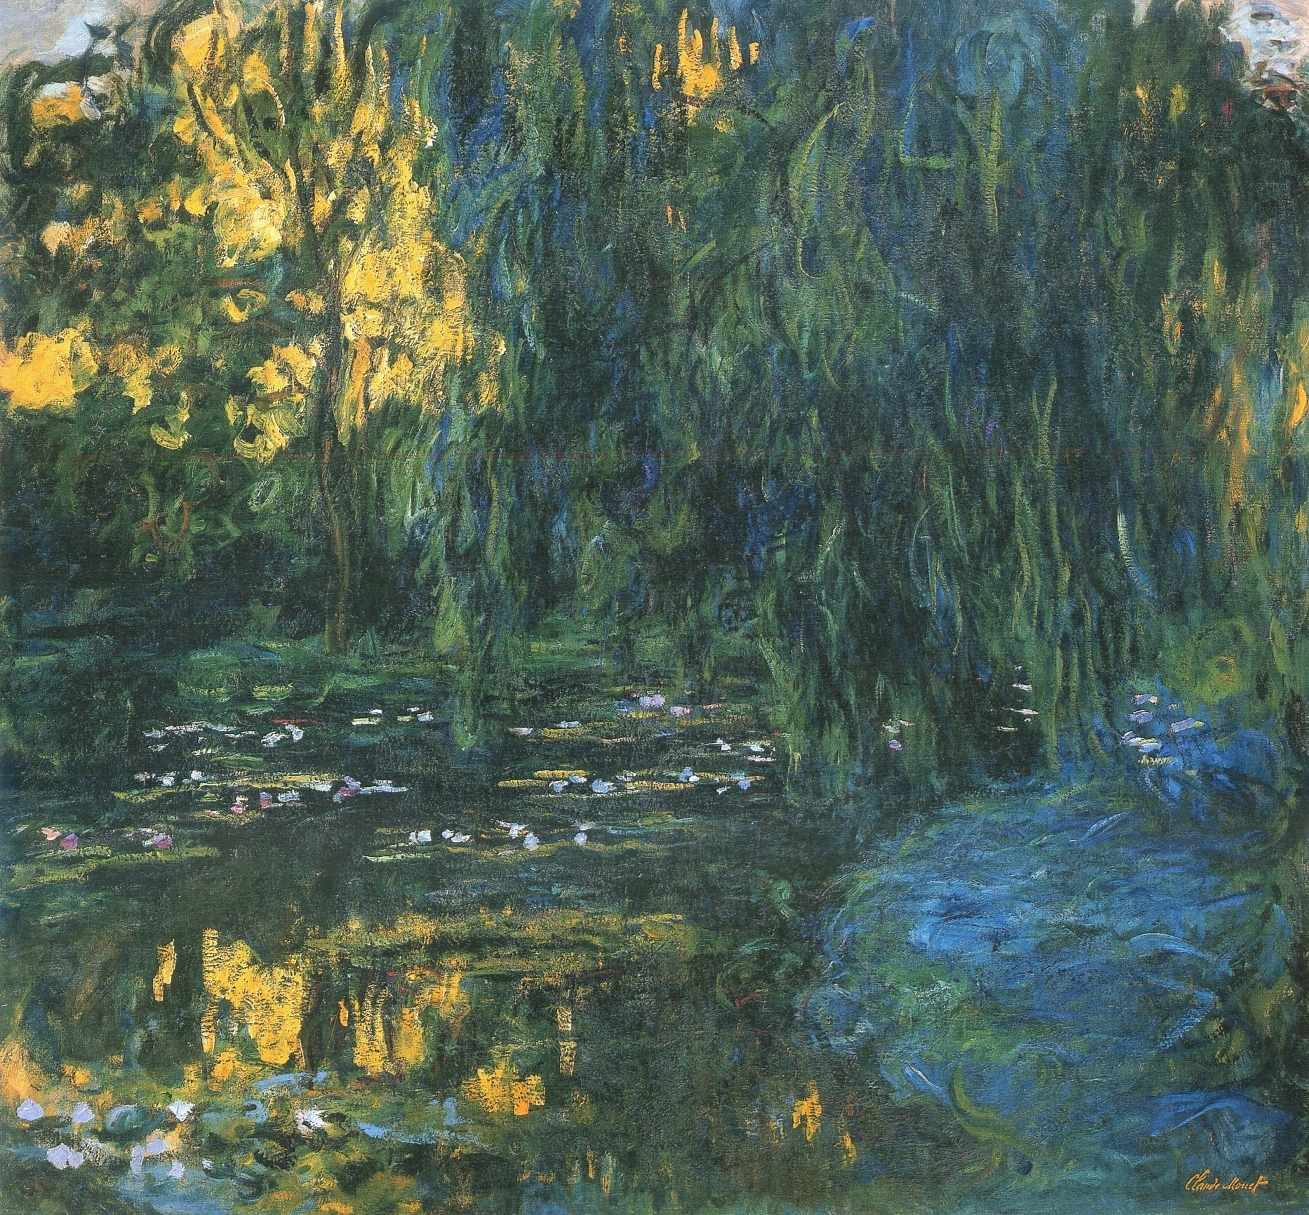 Water Lily Pond and Weeping Willow, by Claude Monet, circa 1916